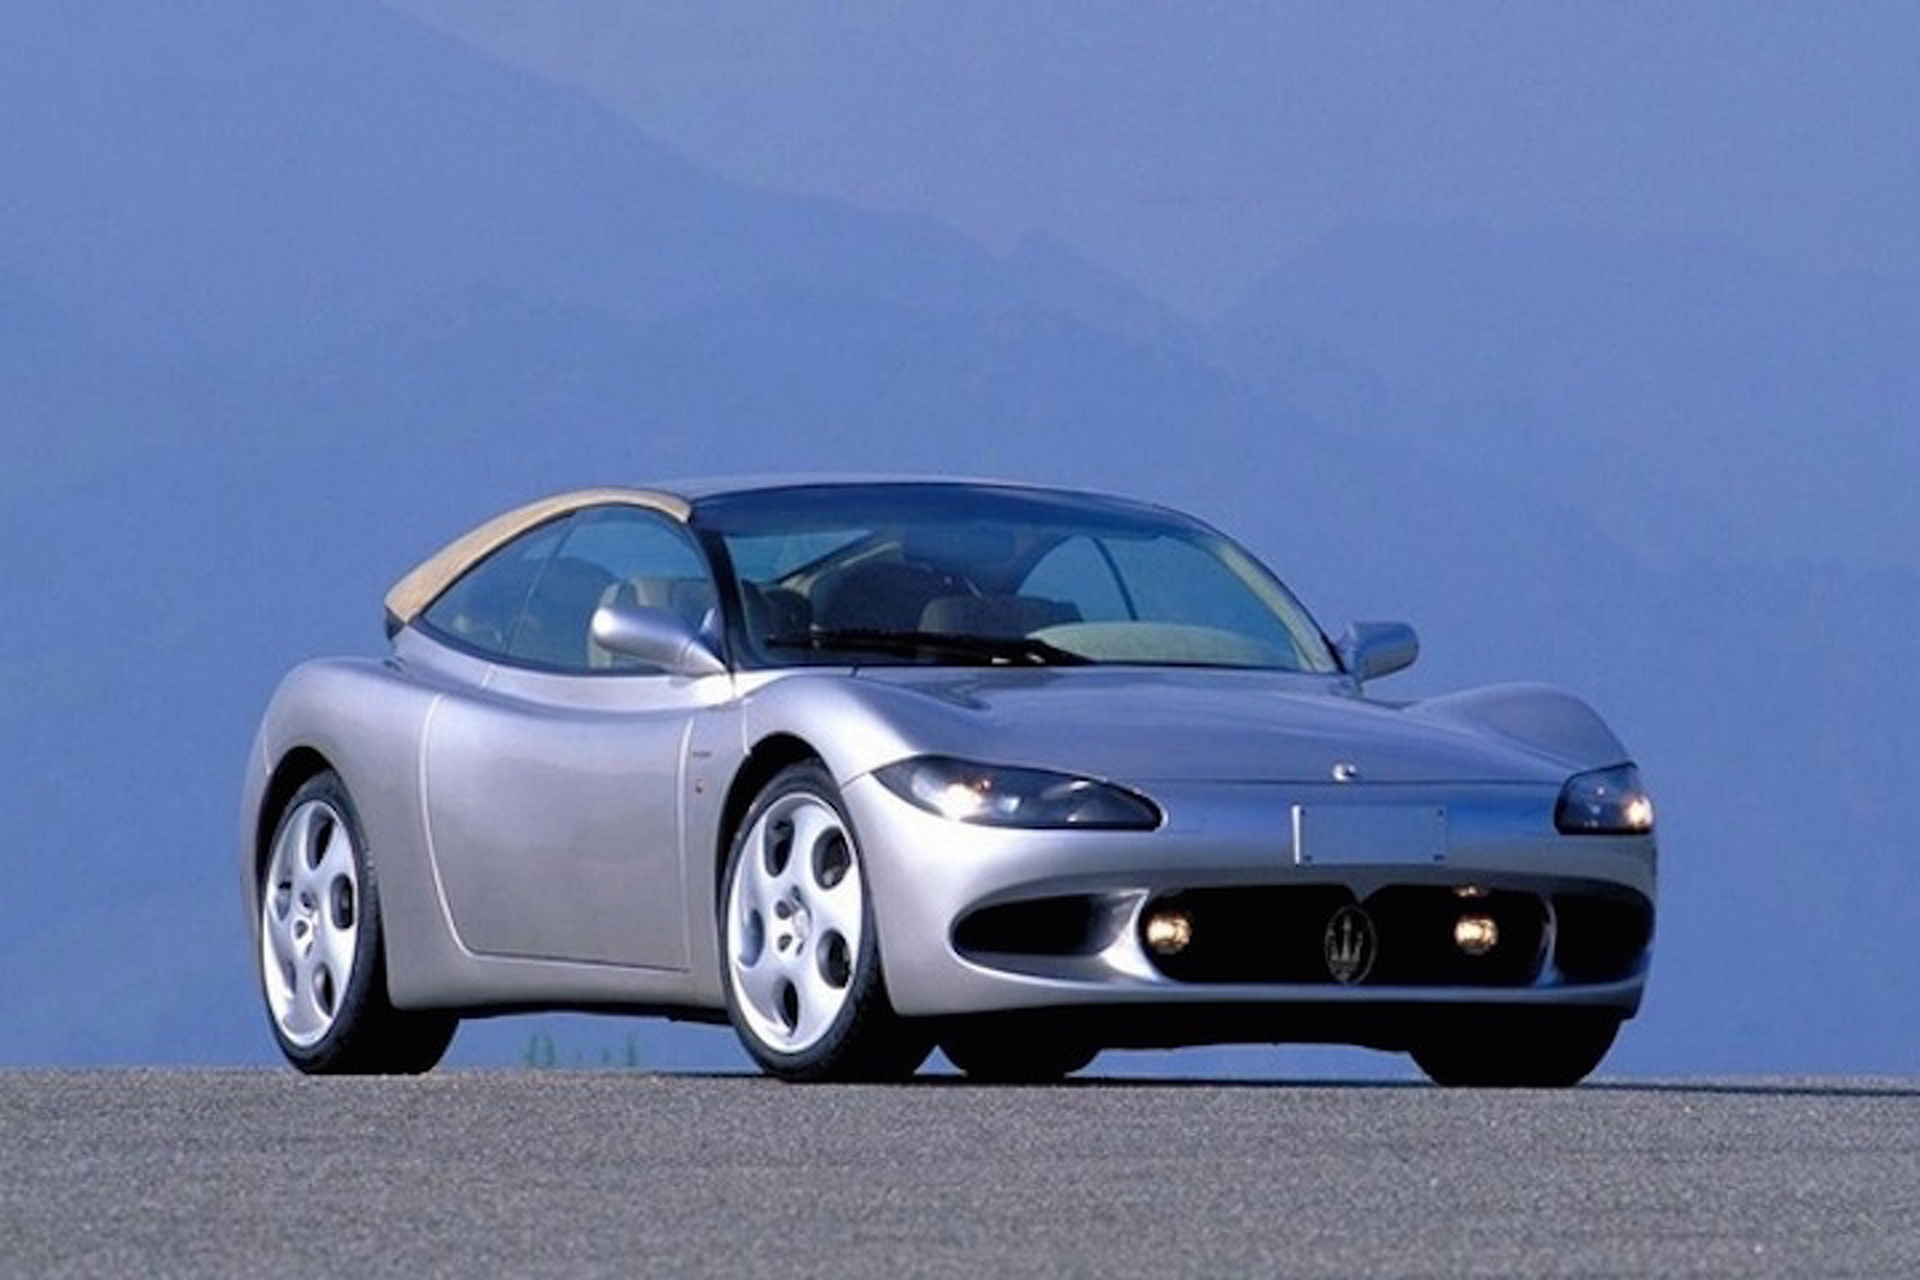 Overzealous '90s Maserati Monstrosity: Weird Car of the Week